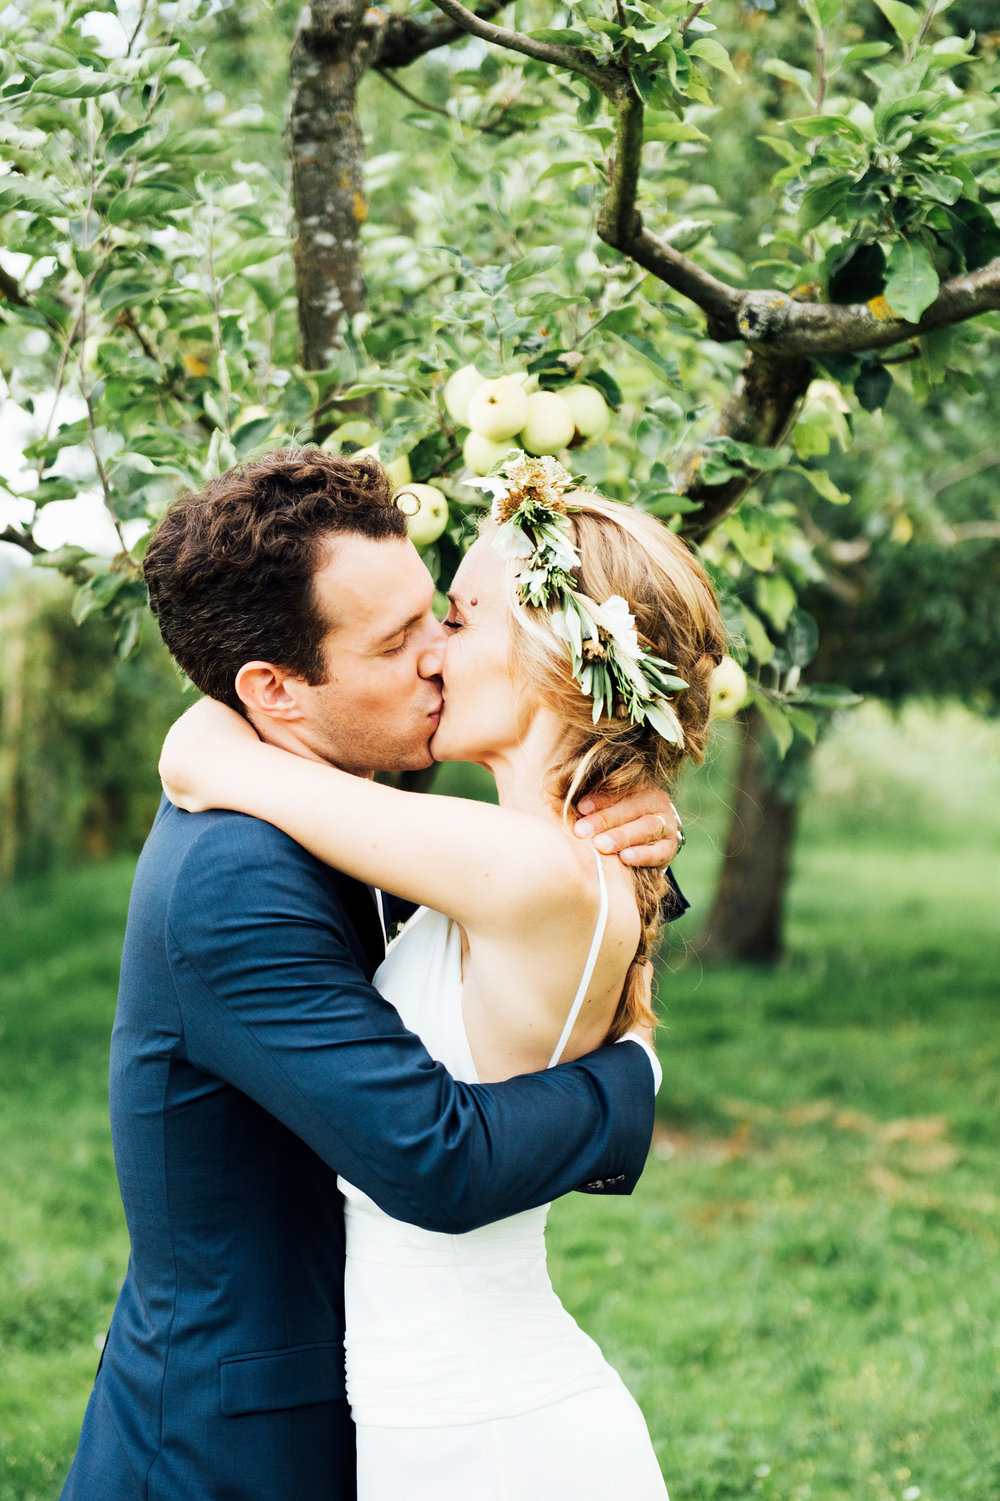 Katie_Mitchell_Photography_French_Country_Garden_Wedding_Paris_37.jpg